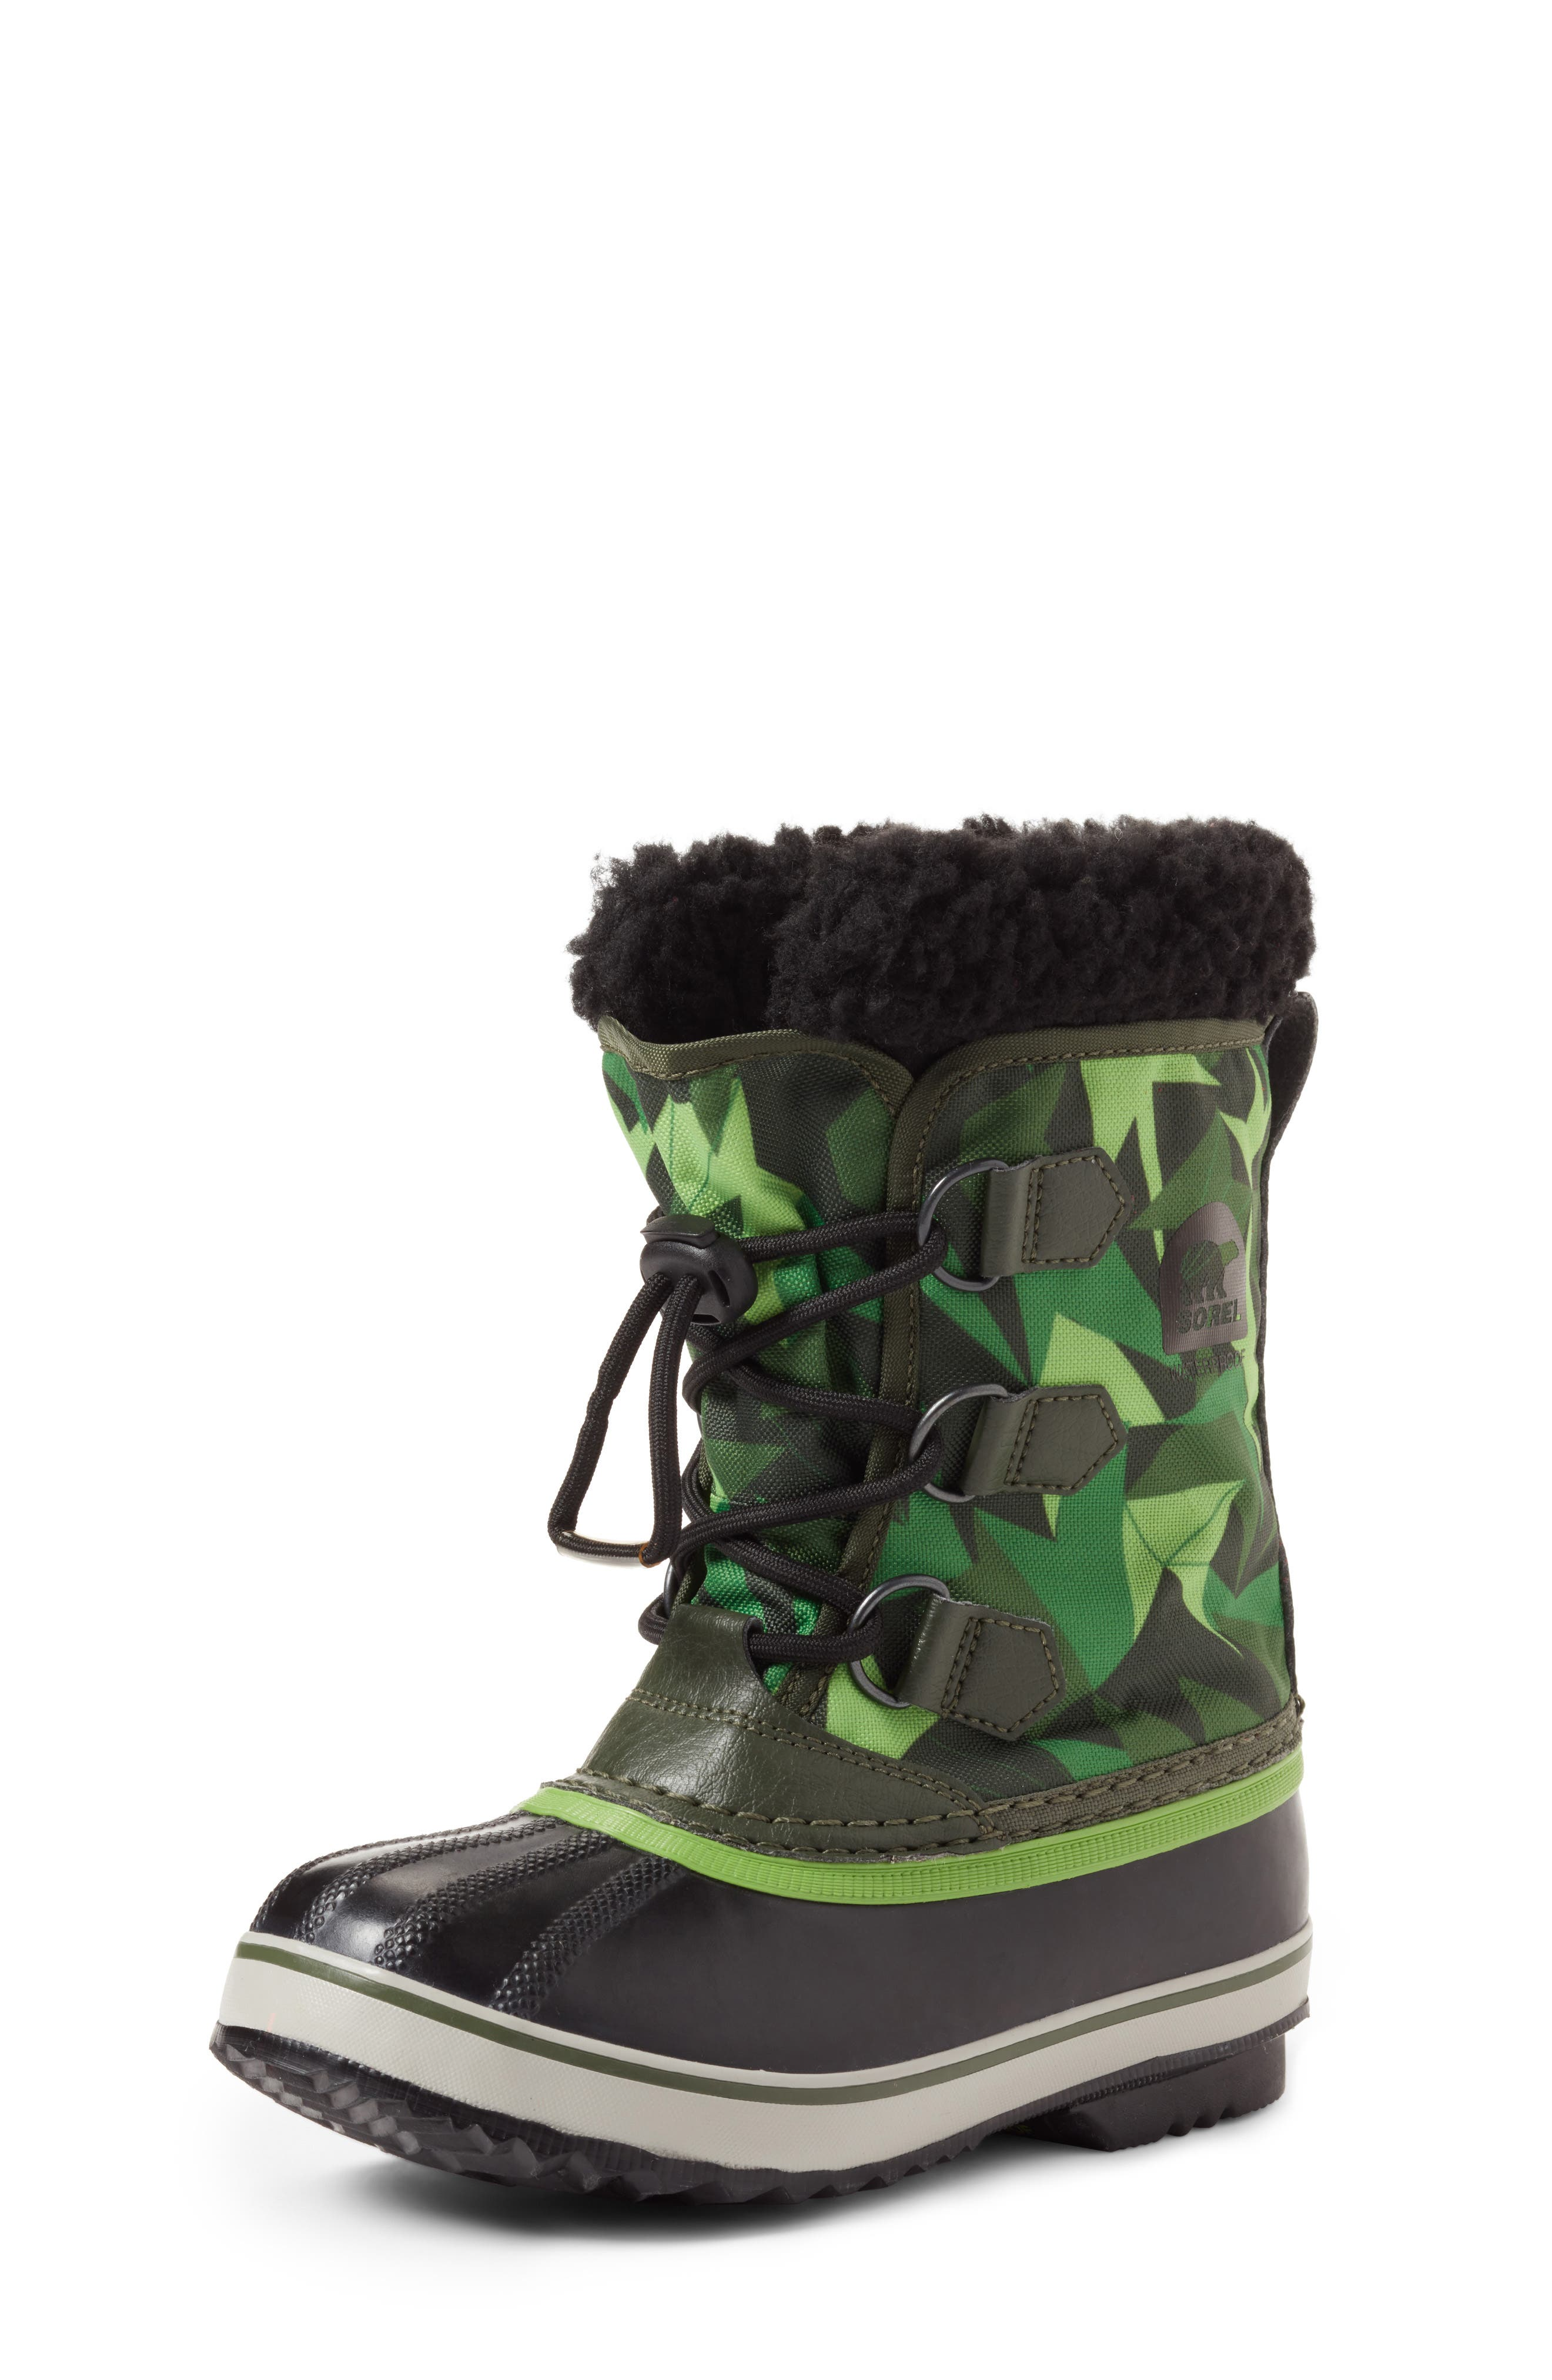 Yoot Pac Waterproof Insulated Snow Boot,                         Main,                         color, 347